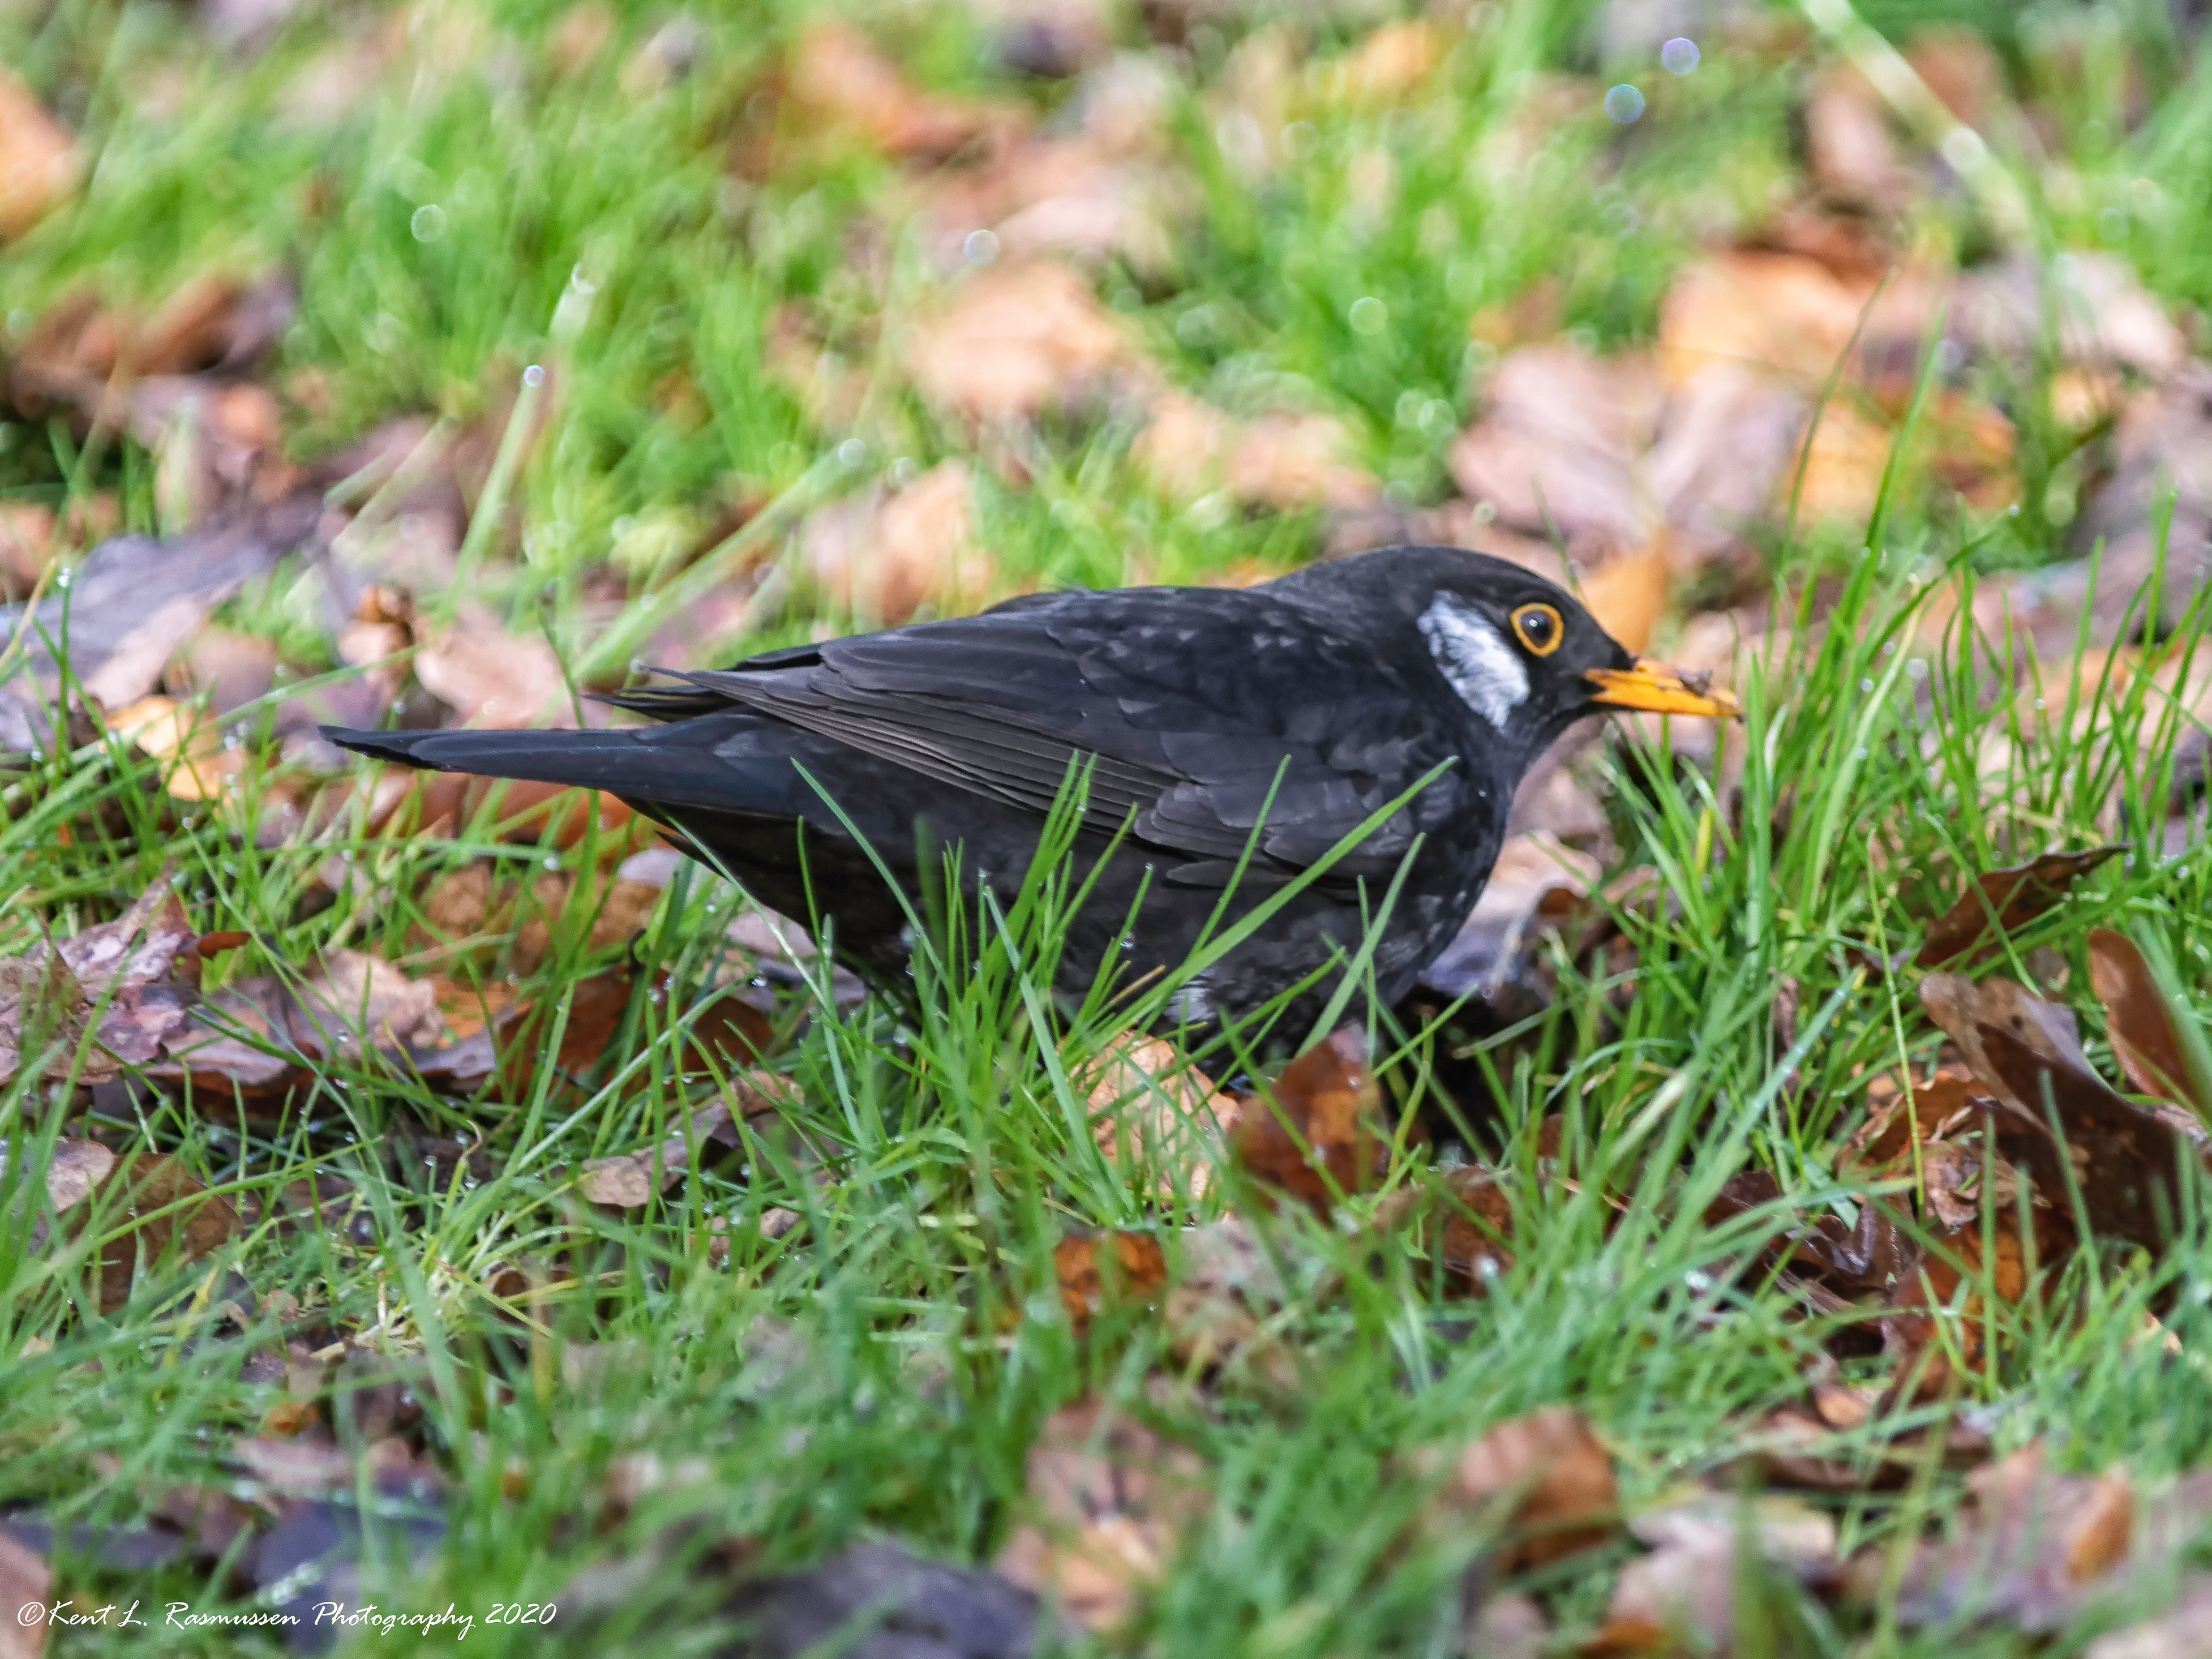 Blackbird with white feathers